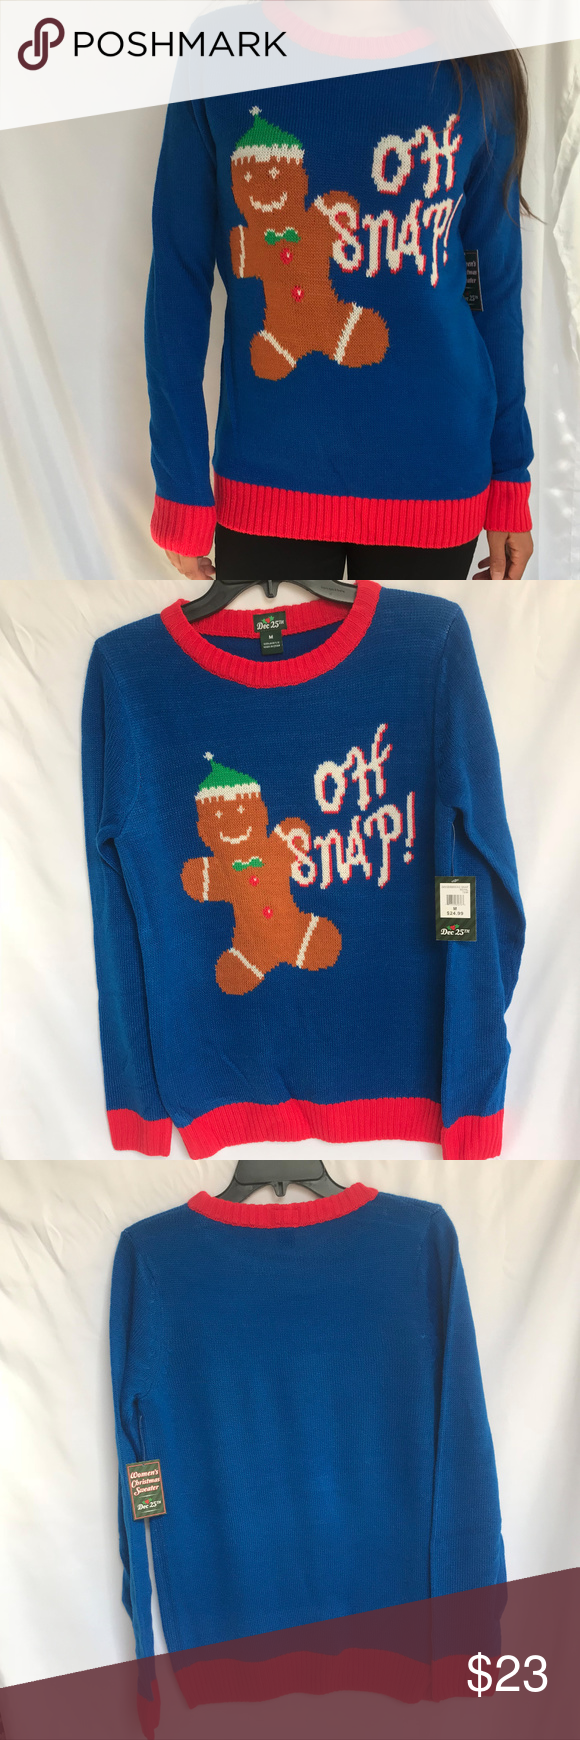 NWT Ladies Ugly Christmas Sweater - Oh Snap! NWT | Ugliest christmas ...